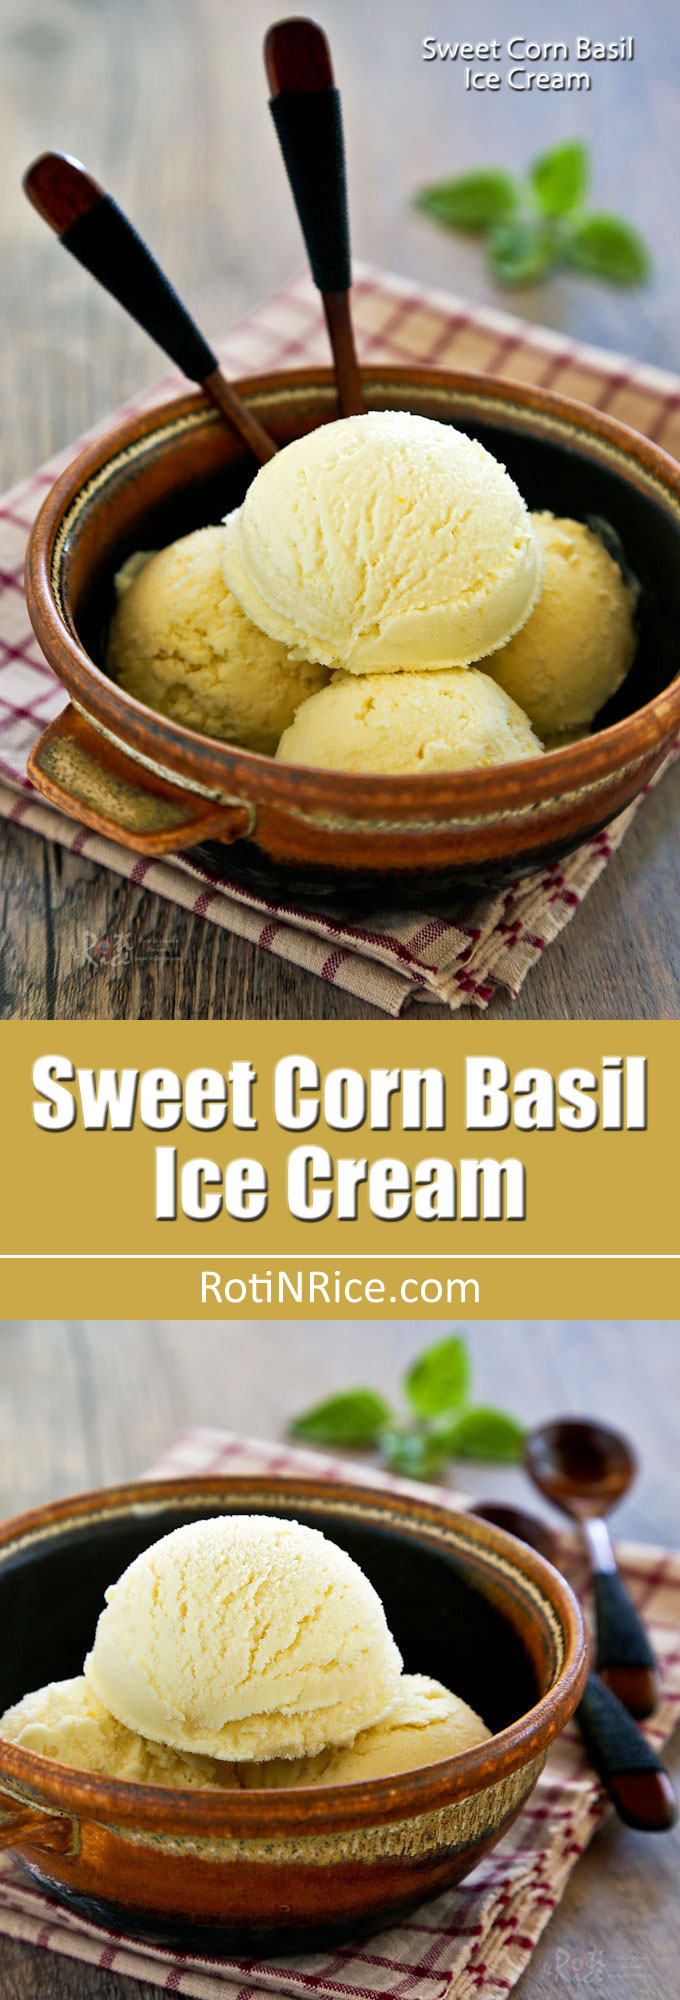 This fragrant Sweet Corn Basil Ice Cream is a delicious treat any time of the year. It is fully infused with fresh corn and a slightly spicy basil flavor. | RotiNRice.com